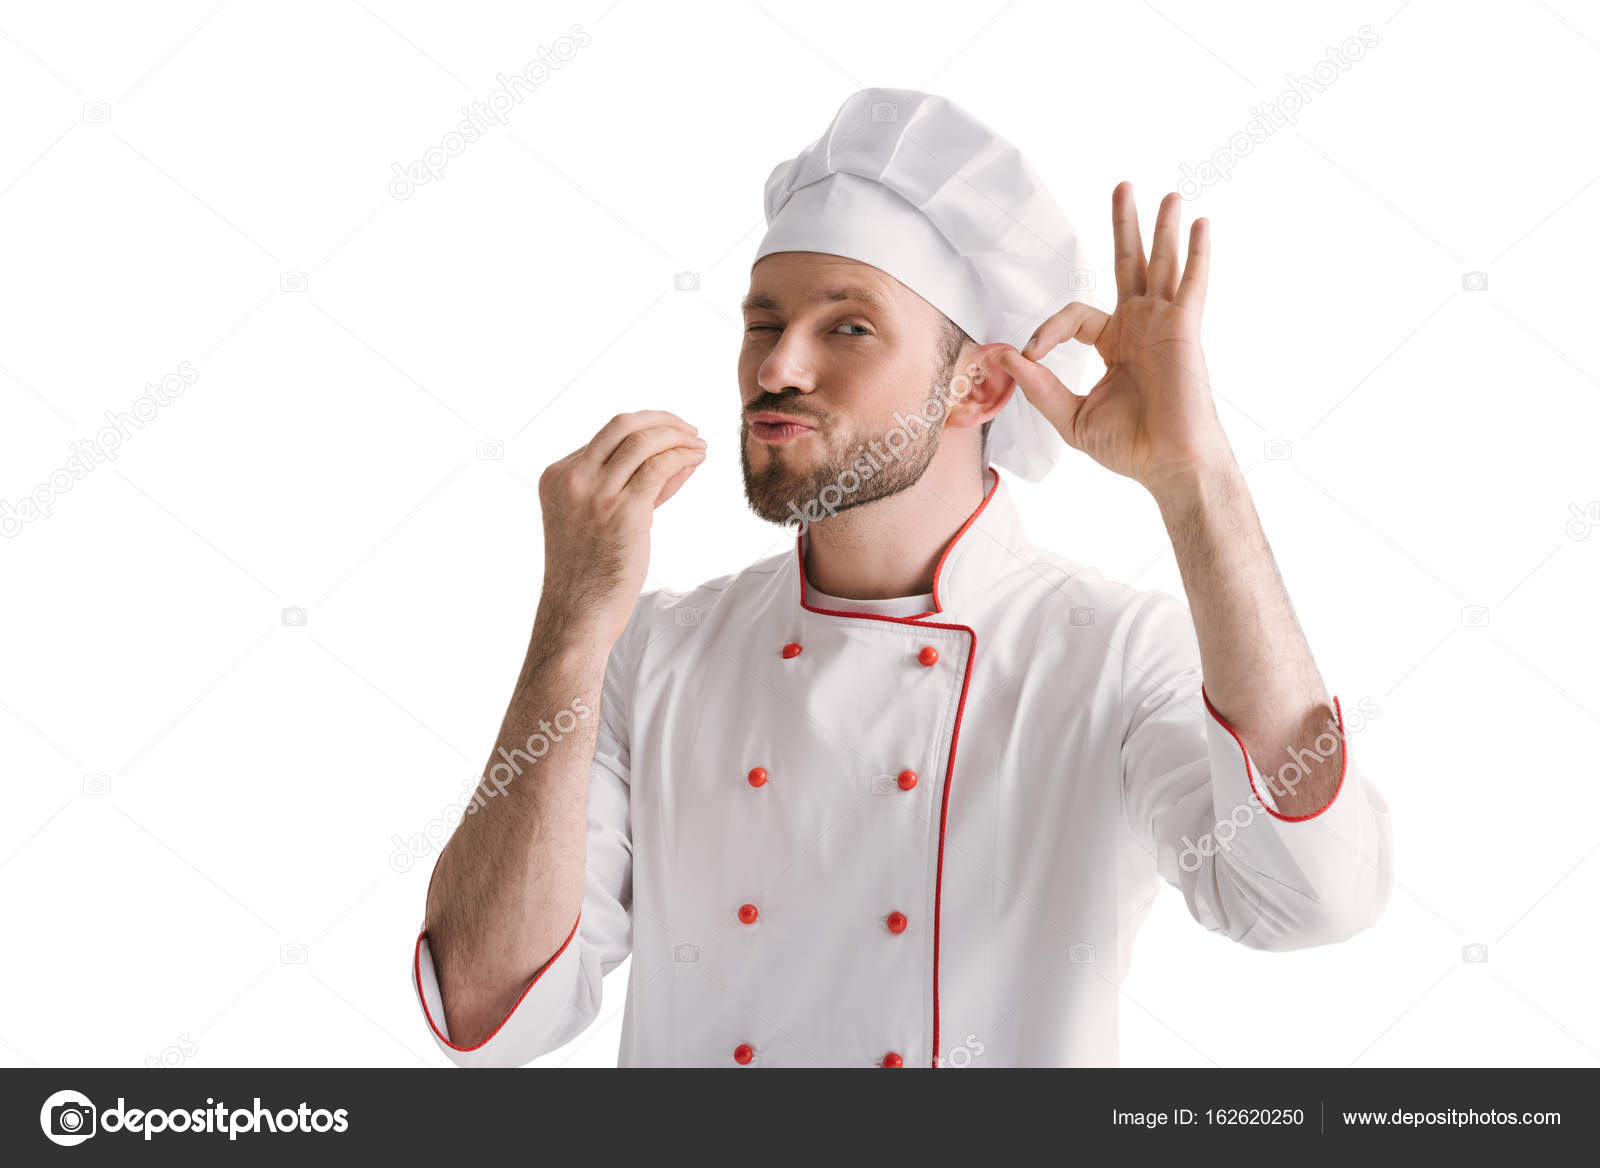 Image result for chef stock photo